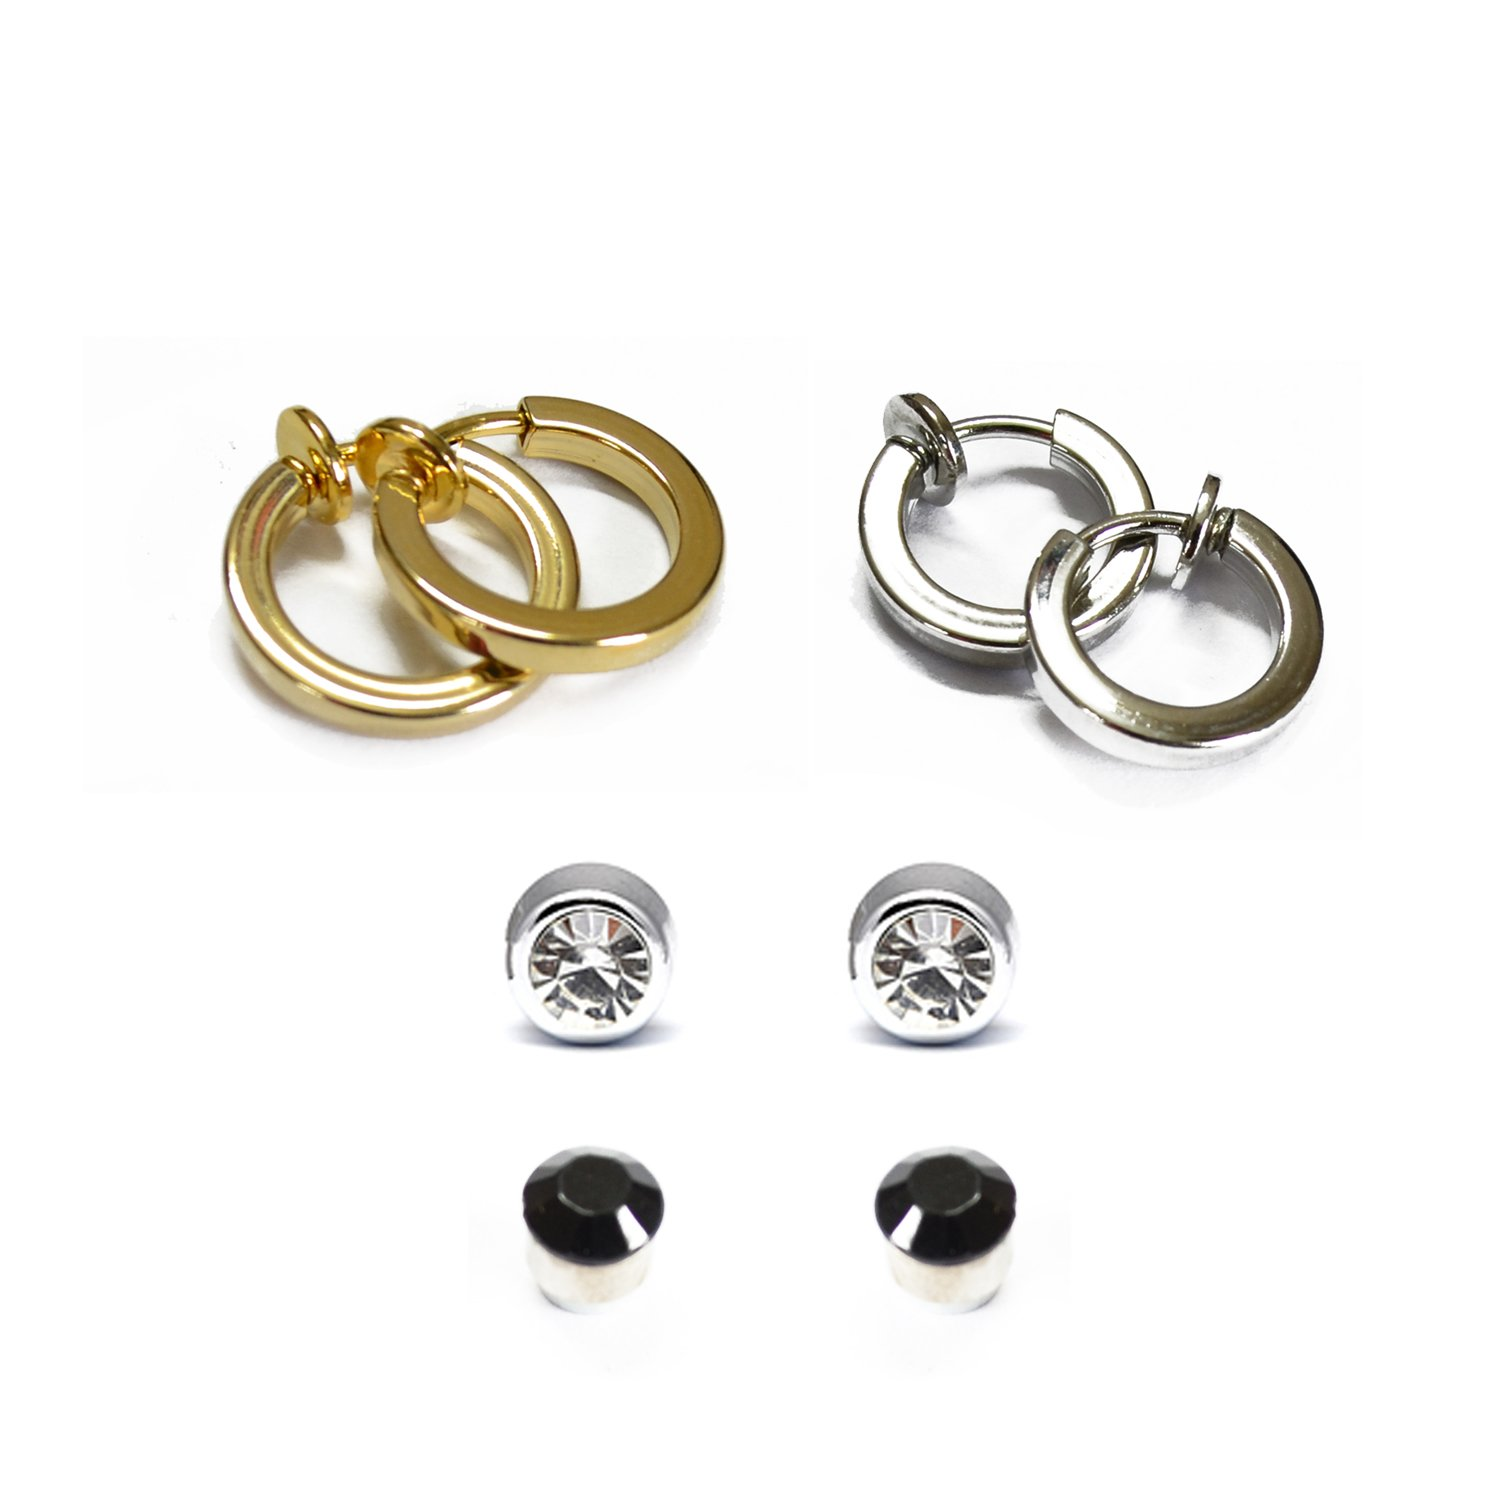 Buy Via Mazzini Clip On & Magnetic 4 Earringsbo For Nonpierced Ears  For Girls Online At Low Prices In India  Amazon Jewellery Store  Amazon